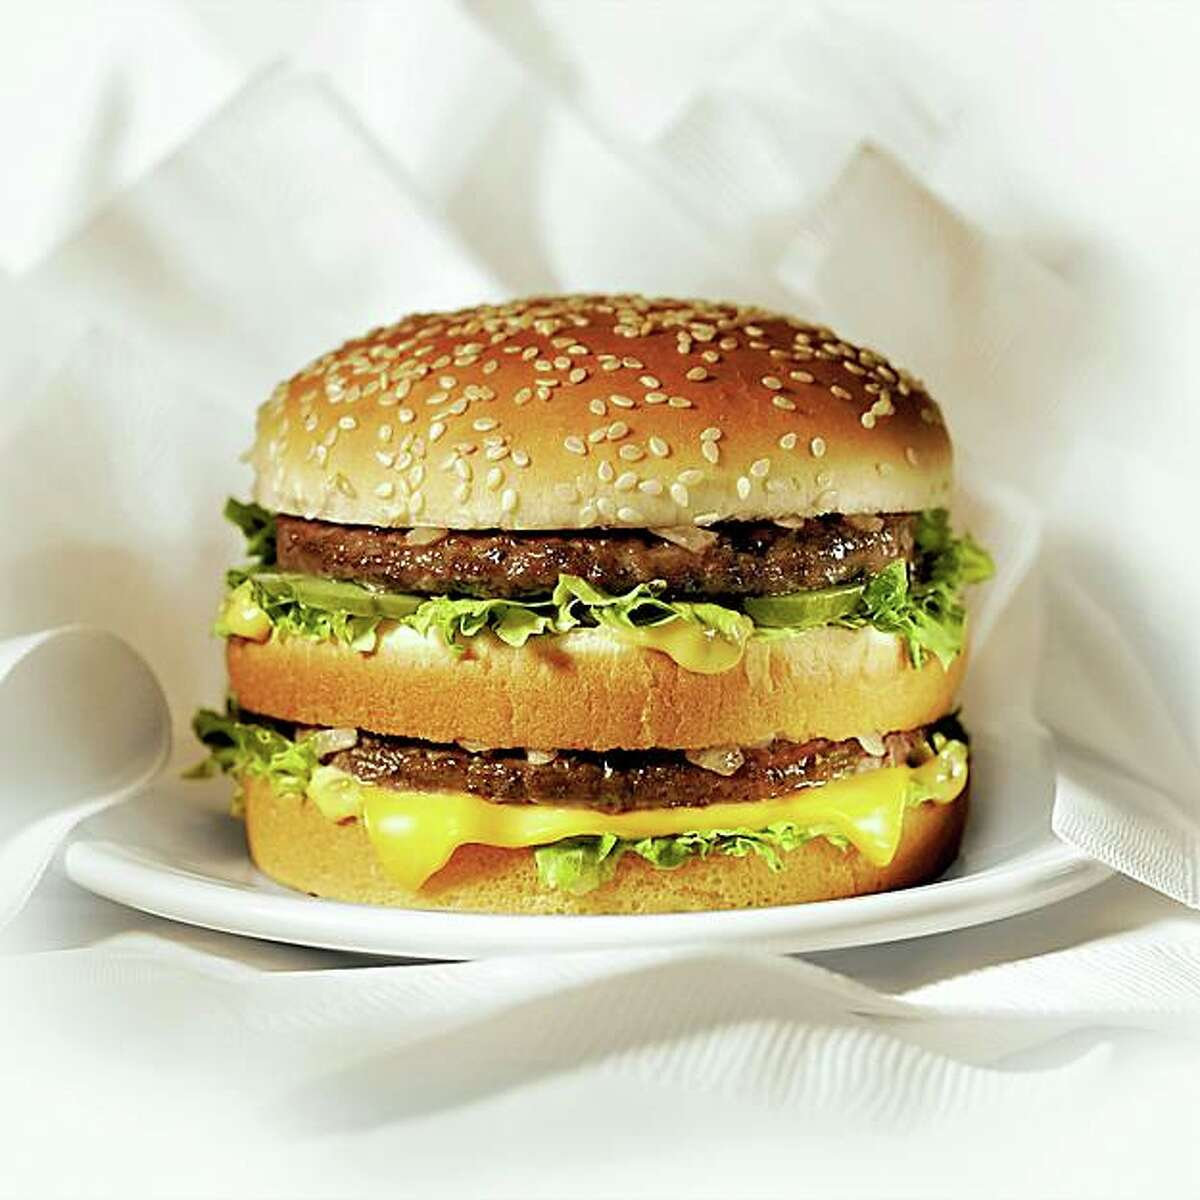 A San Francisco Board of Supervisors committee approved regulations requiring chain restaurants in the city to post on menus nutritional information such as total calories and fat content for standard food items. Under the new regulation, McDonald's would have to post the nutritional information for foods such as a Big Mac. Photo Courtesy of McDonald's Corporation